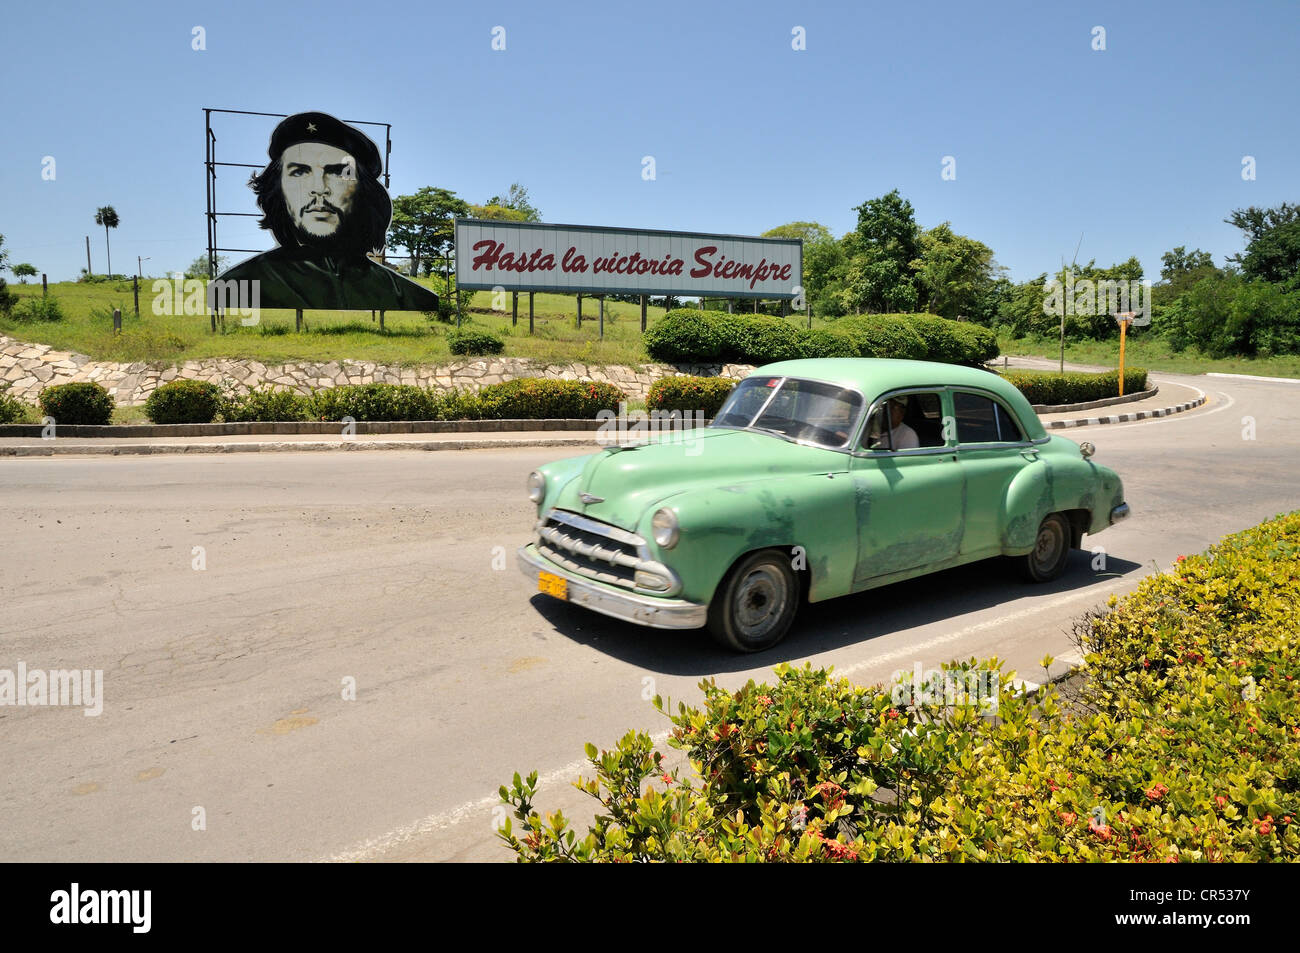 Vintage car in front of revolutionary propaganda, 'Hasta la victoria siempre', Spanish for 'ever onward - Stock Image